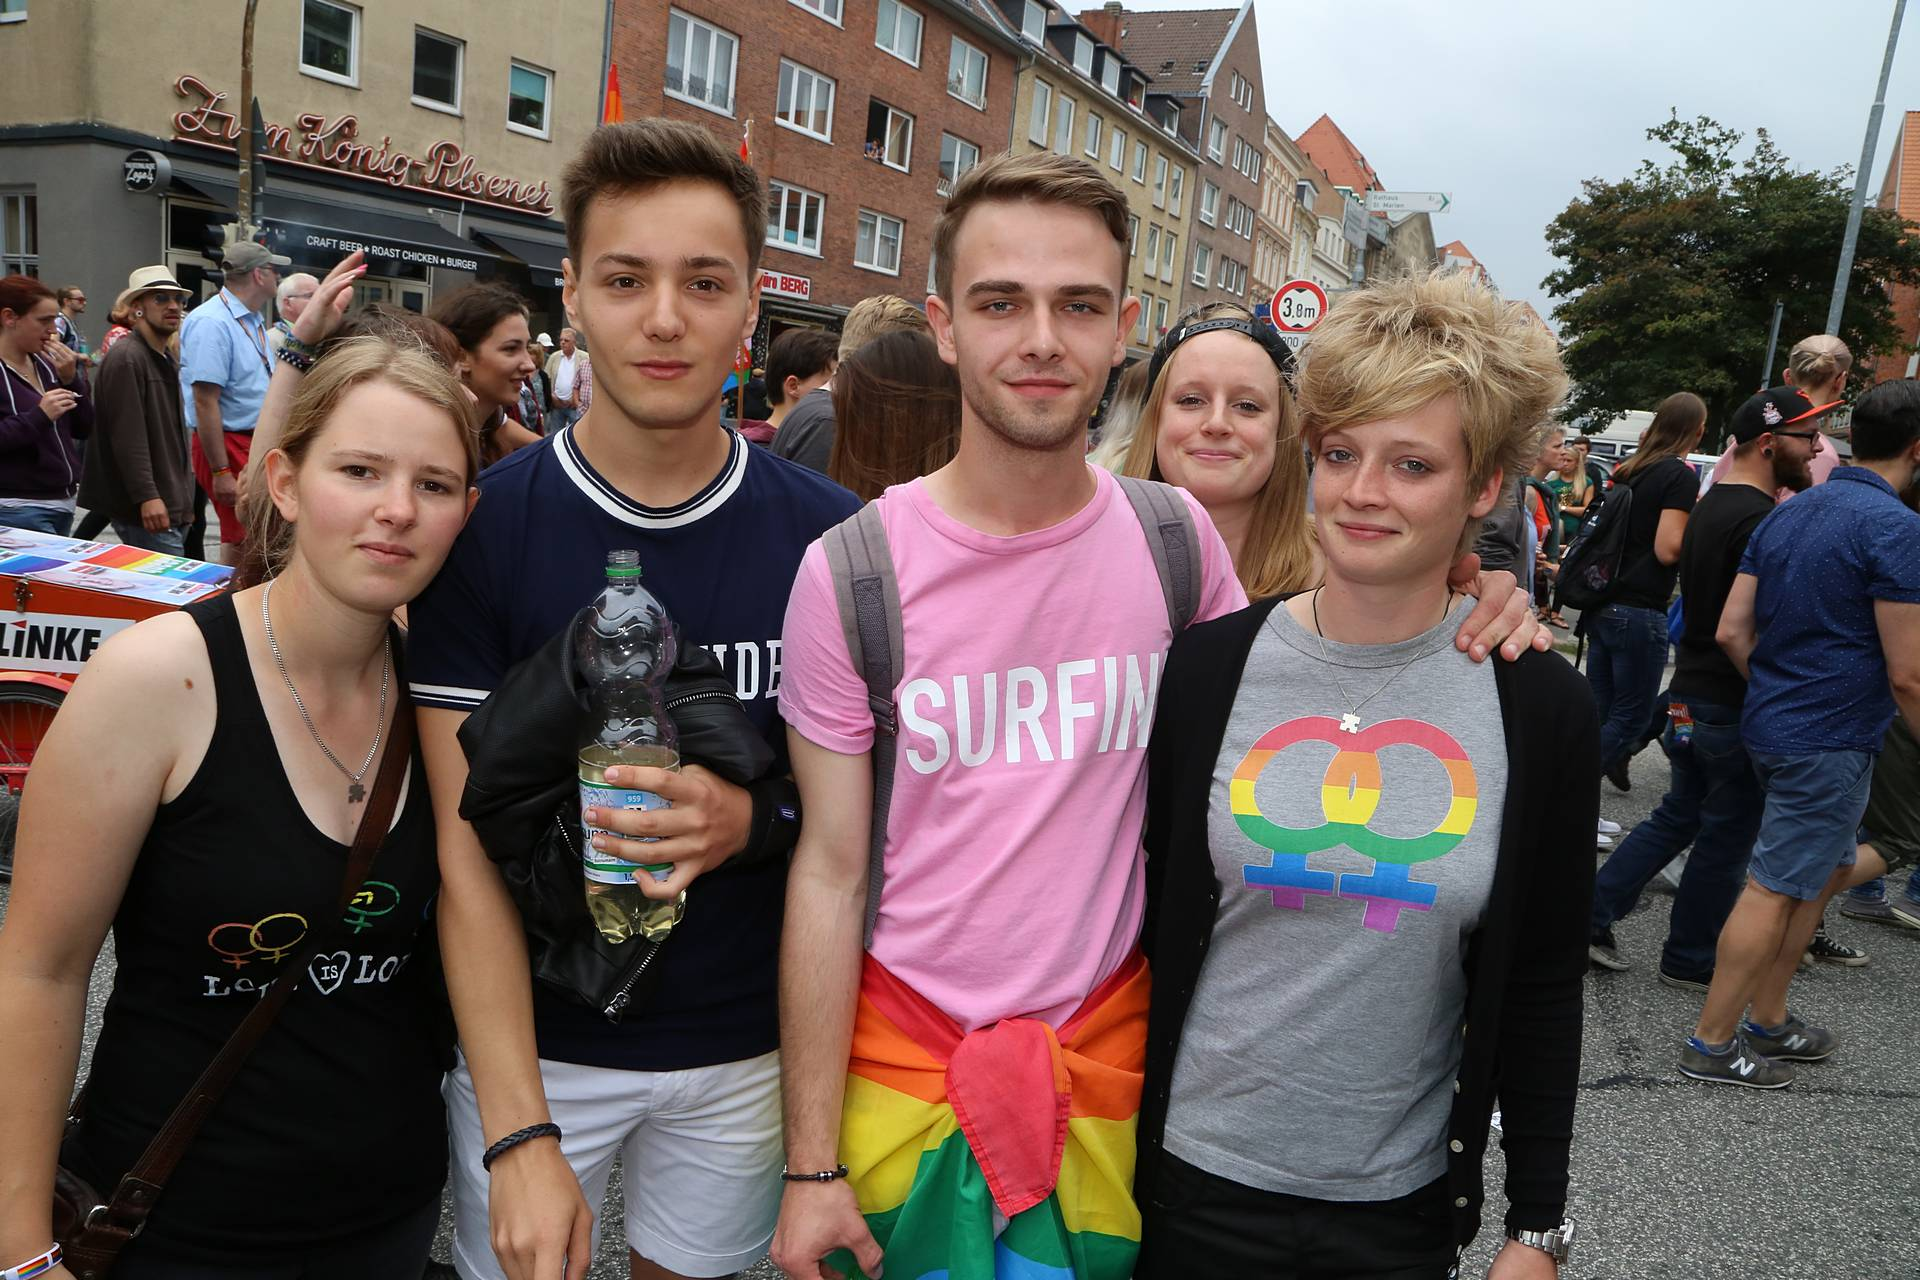 Lübeck Pride - Demonstration - Teil 1 / 517x betrachtet